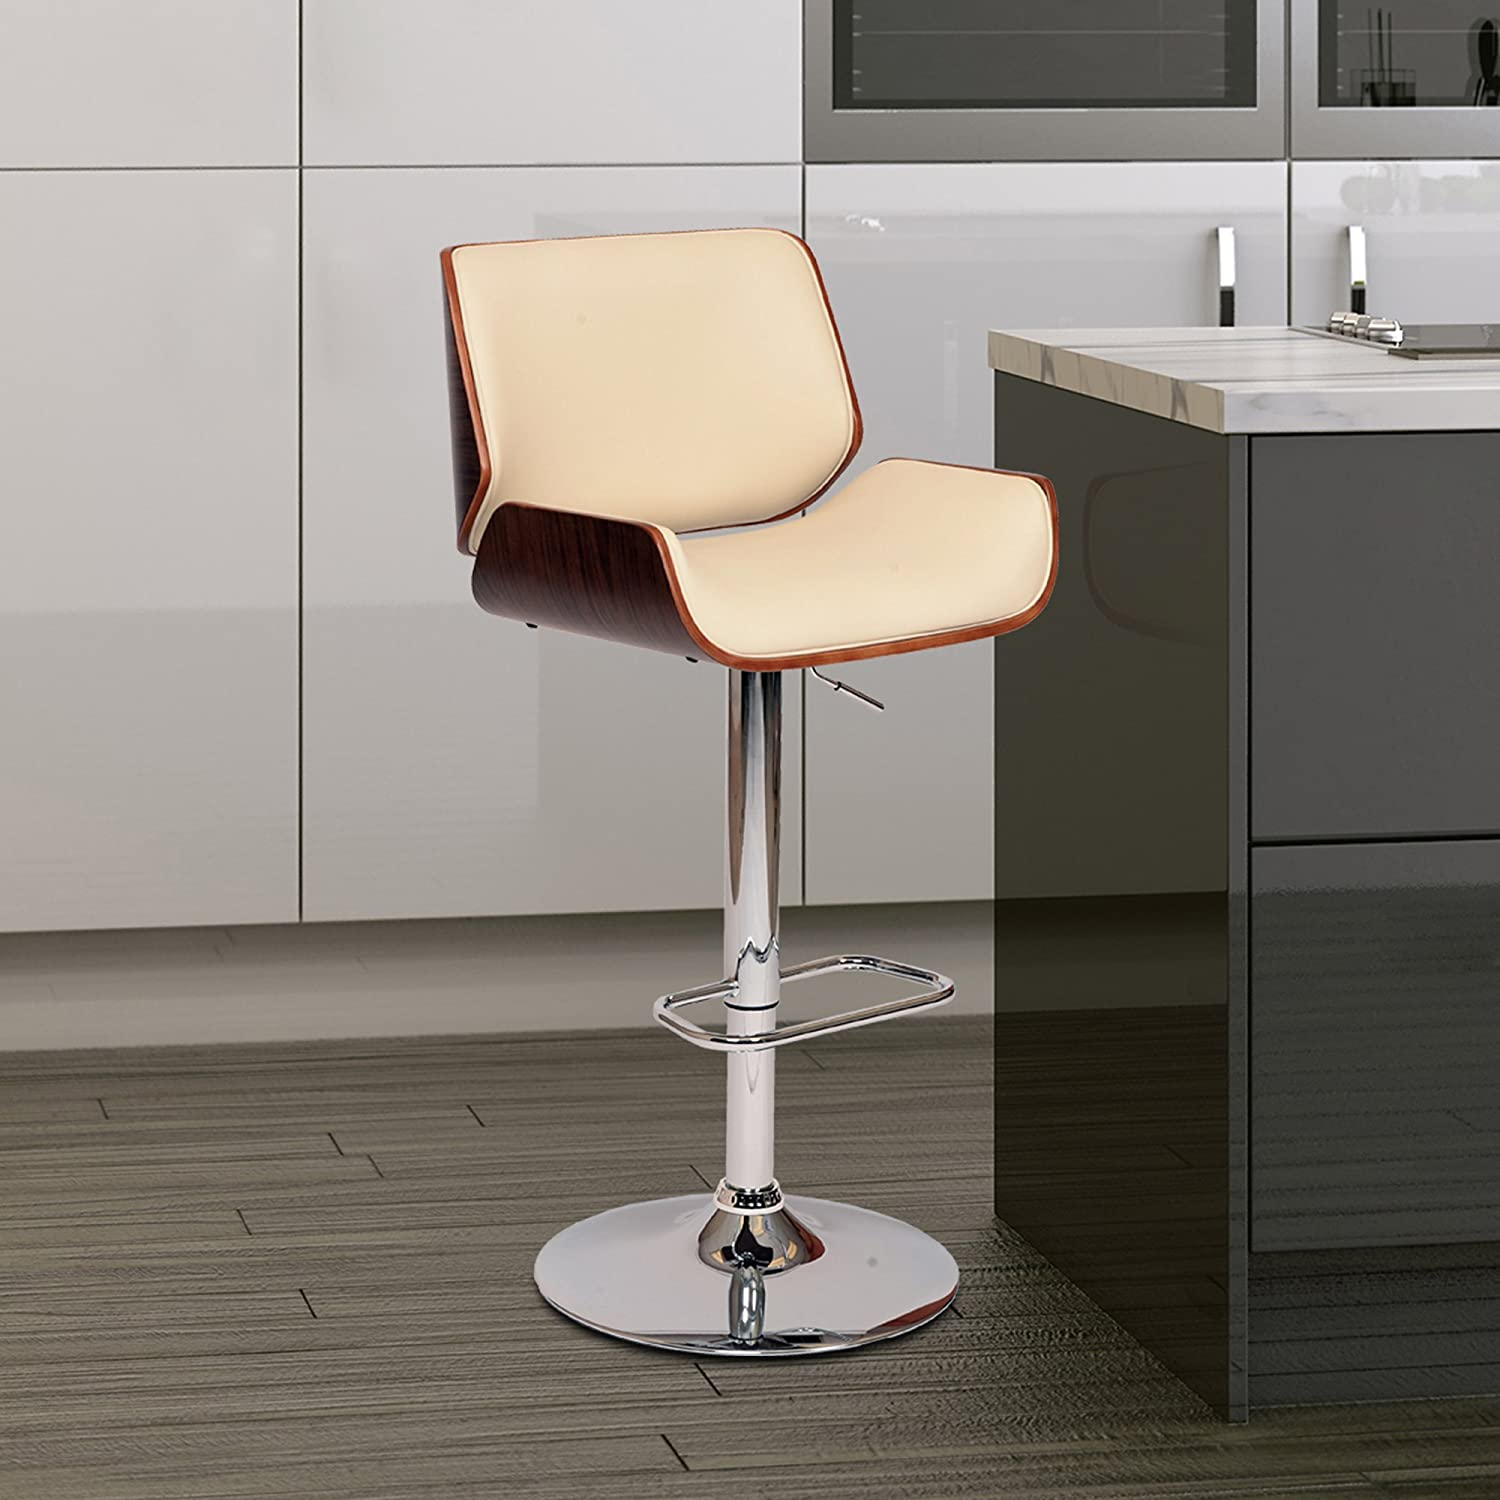 Superior Amazon.com: Armen Living LCLOSWBACRWA London Swivel Barstool In Cream Faux  Leather And Chrome Finish: Kitchen U0026 Dining